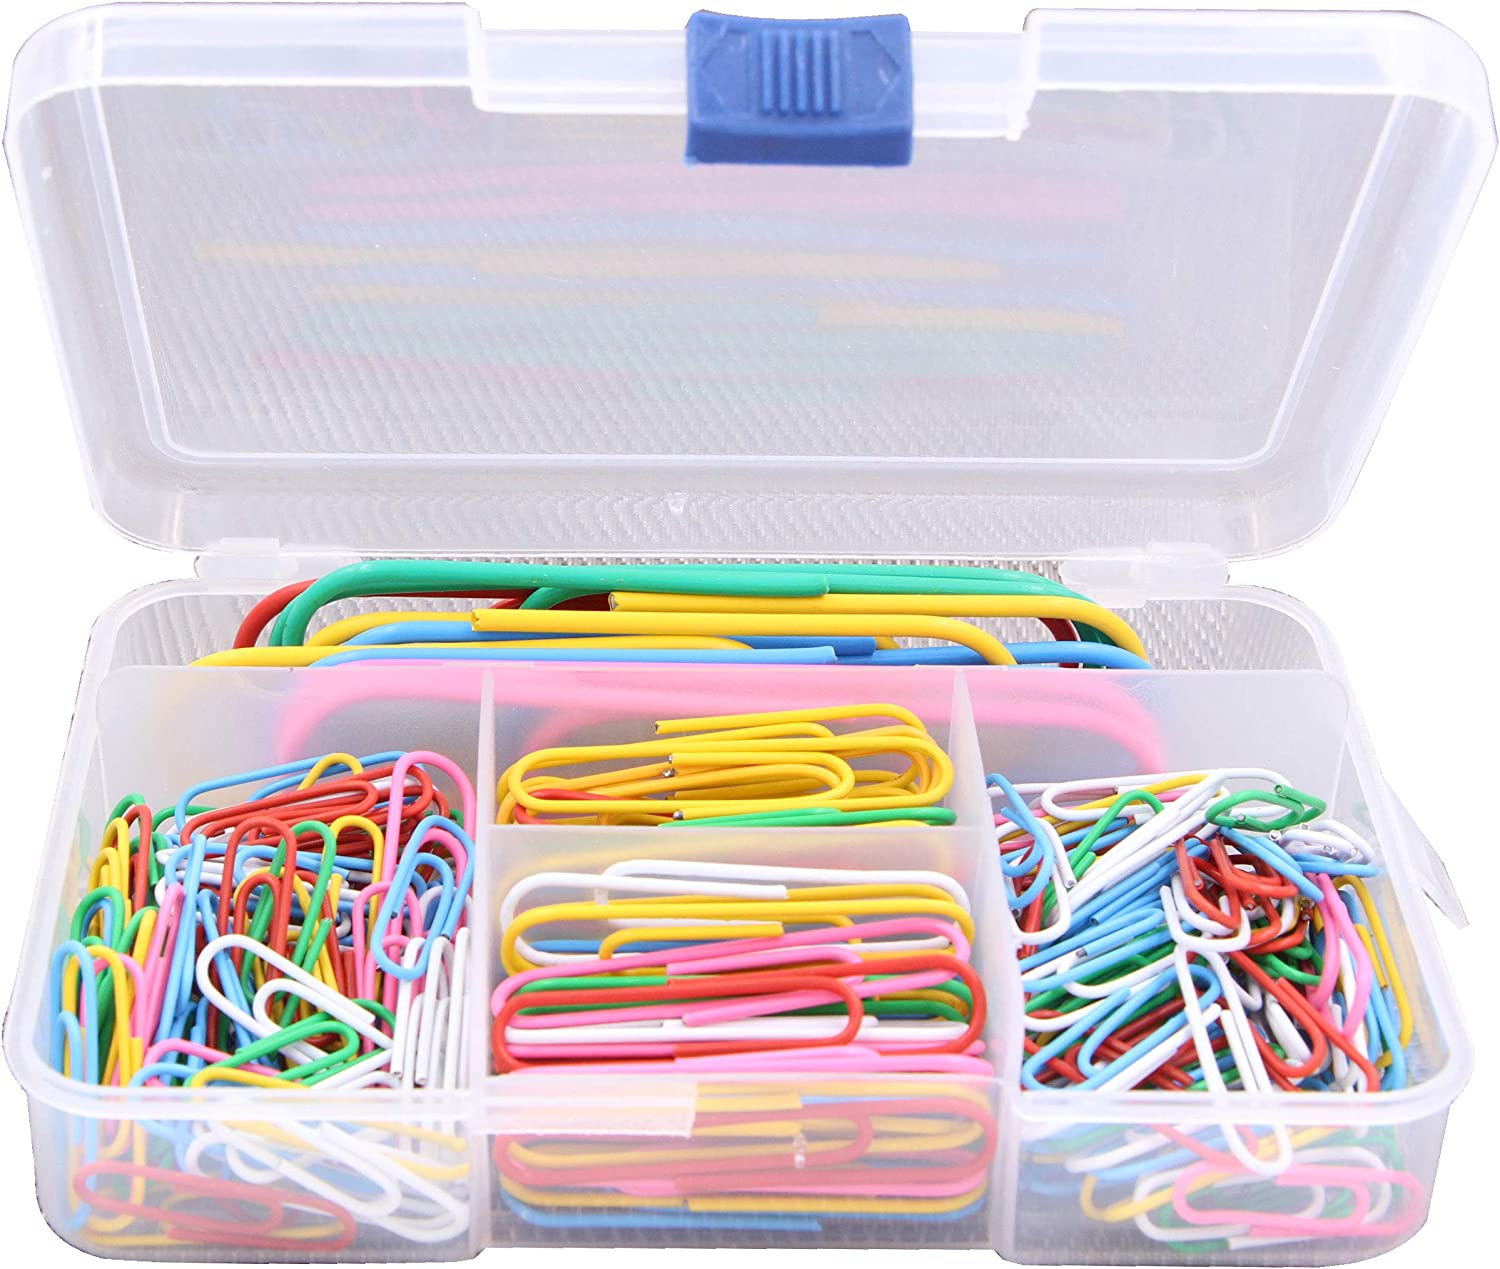 LeBeila 250 Pieces Paper Clips - 3 Sizes Paperclips Small Medium Large, Multi Color Coated Paper Clip Pins for Office Supplies School Paper Binders Clamps with Storage Box (Multi-Color, 250PCS)